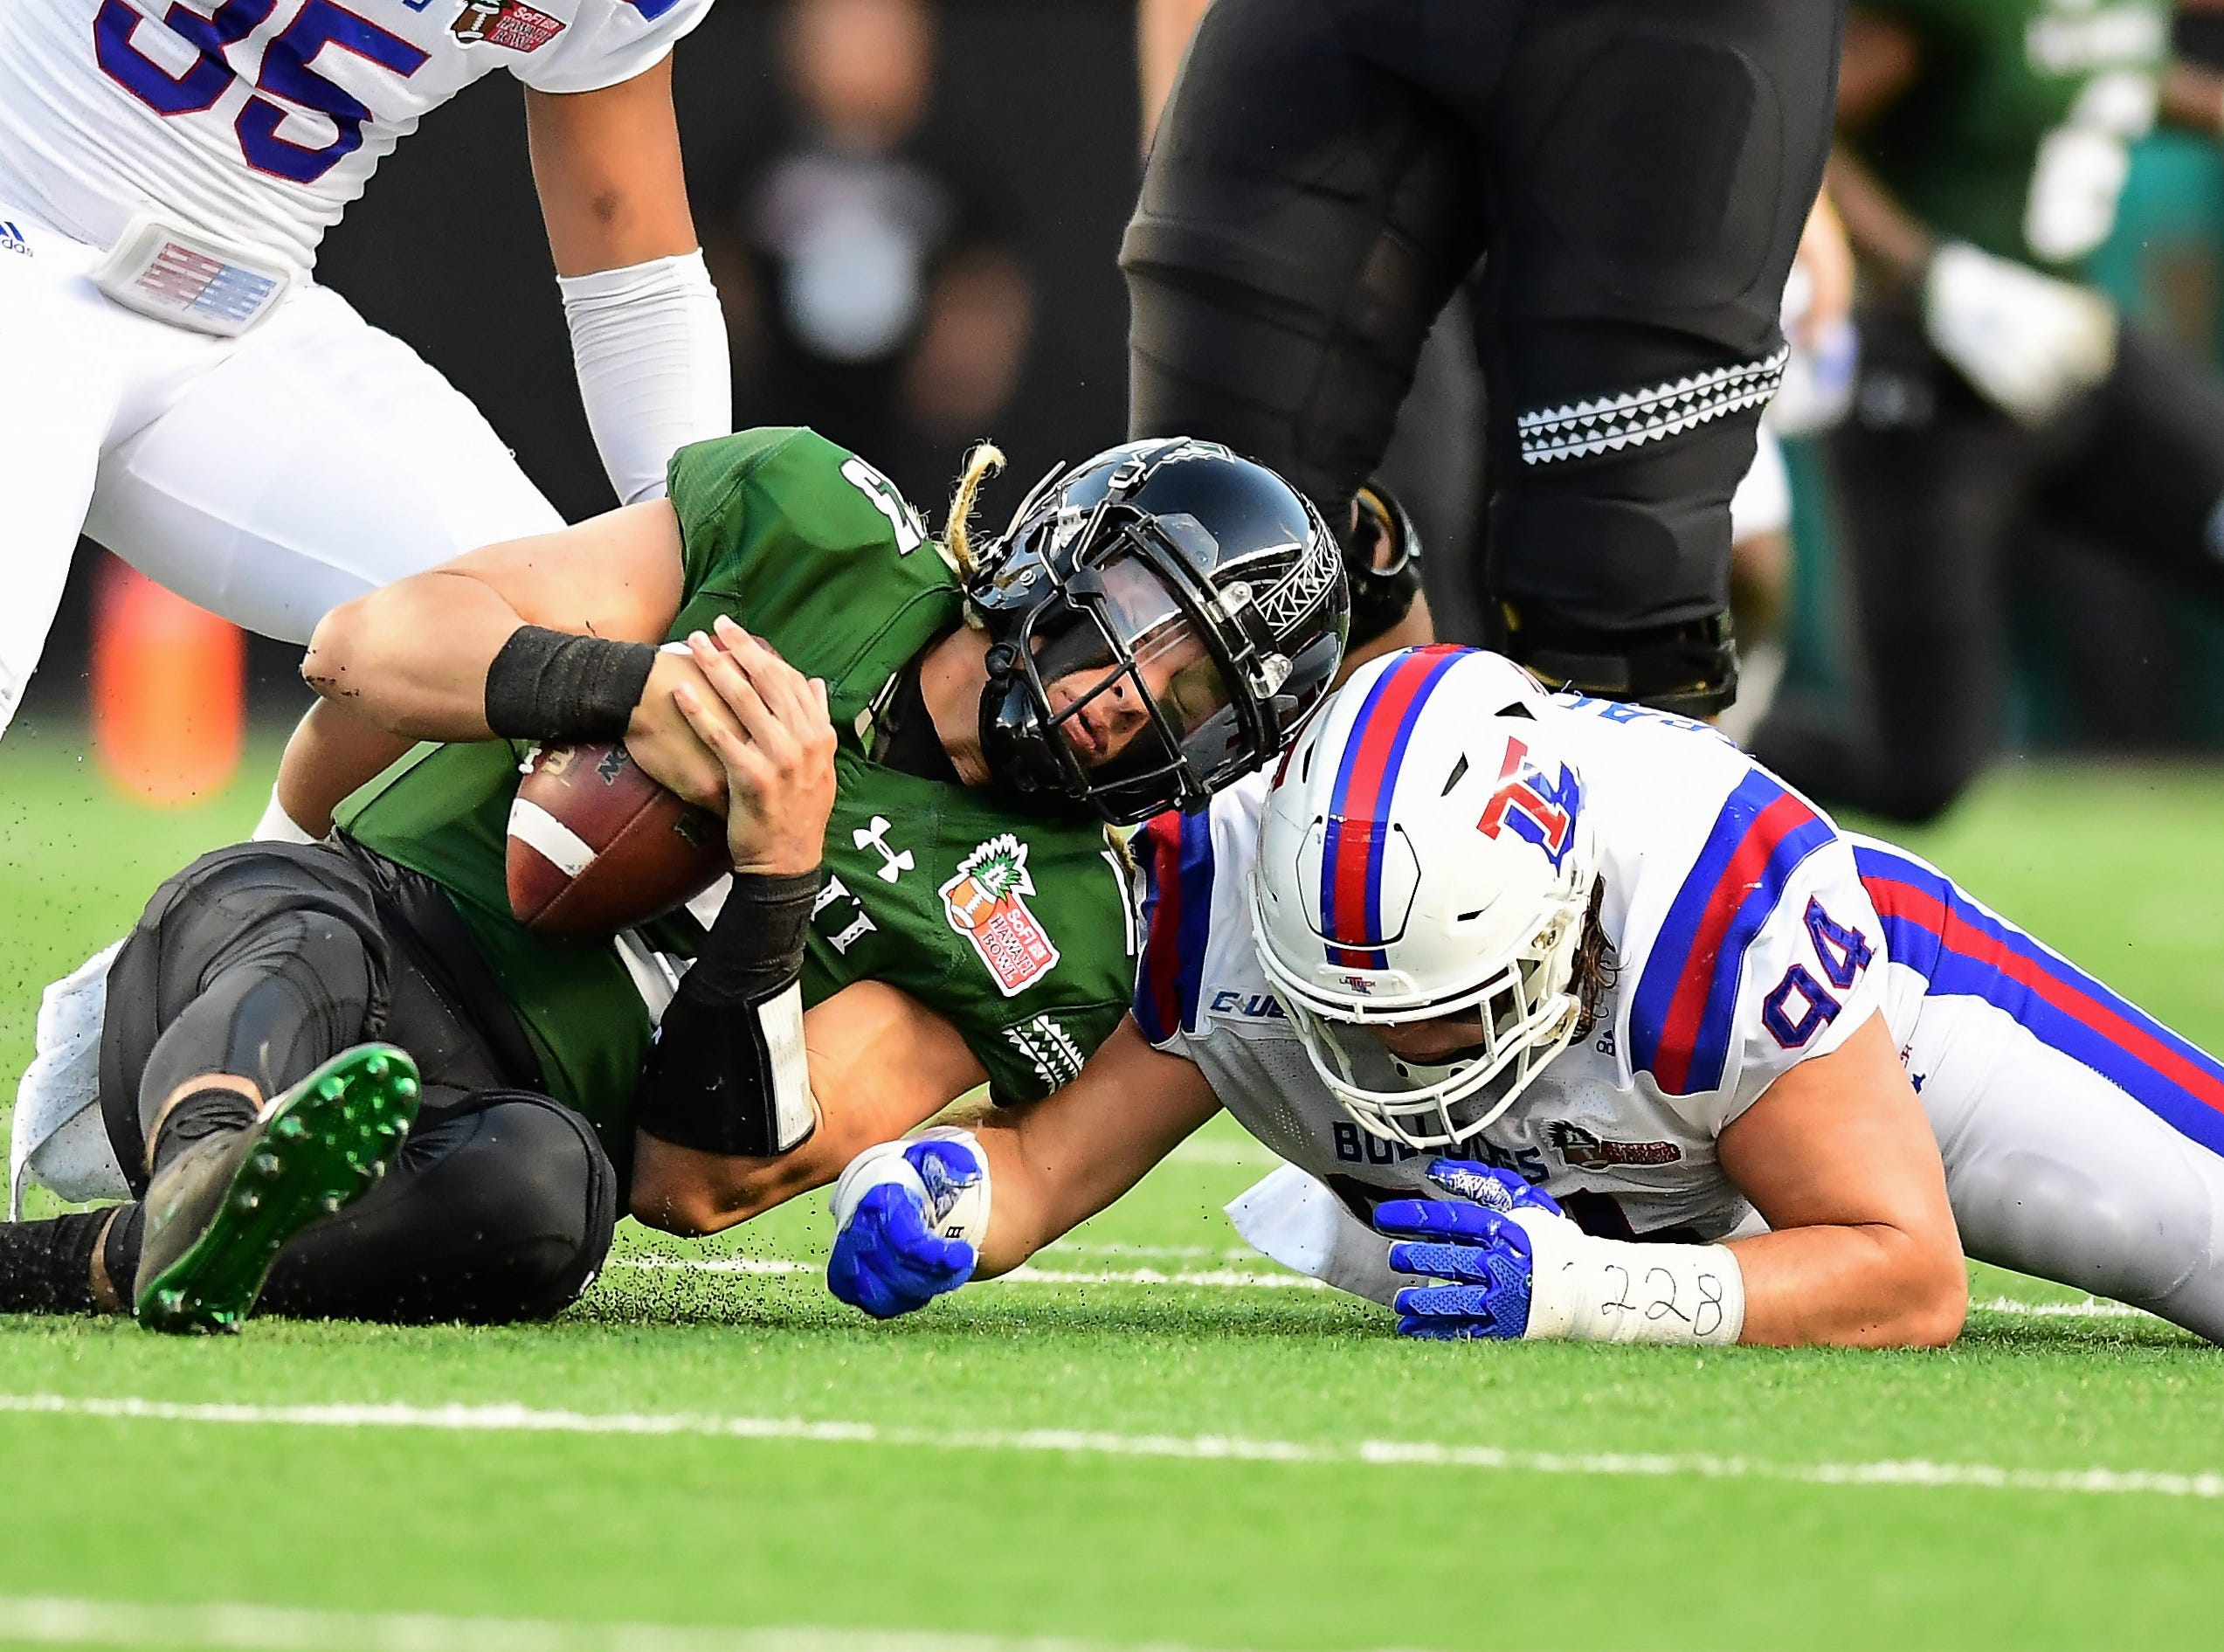 Hawaii Warriors quarterback Cole McDonald (13) fights for a loose ball against Louisiana Tech Bulldogs defensive tackle Jordan Bradford (94) during the first quarter of the Hawaii Bowl.